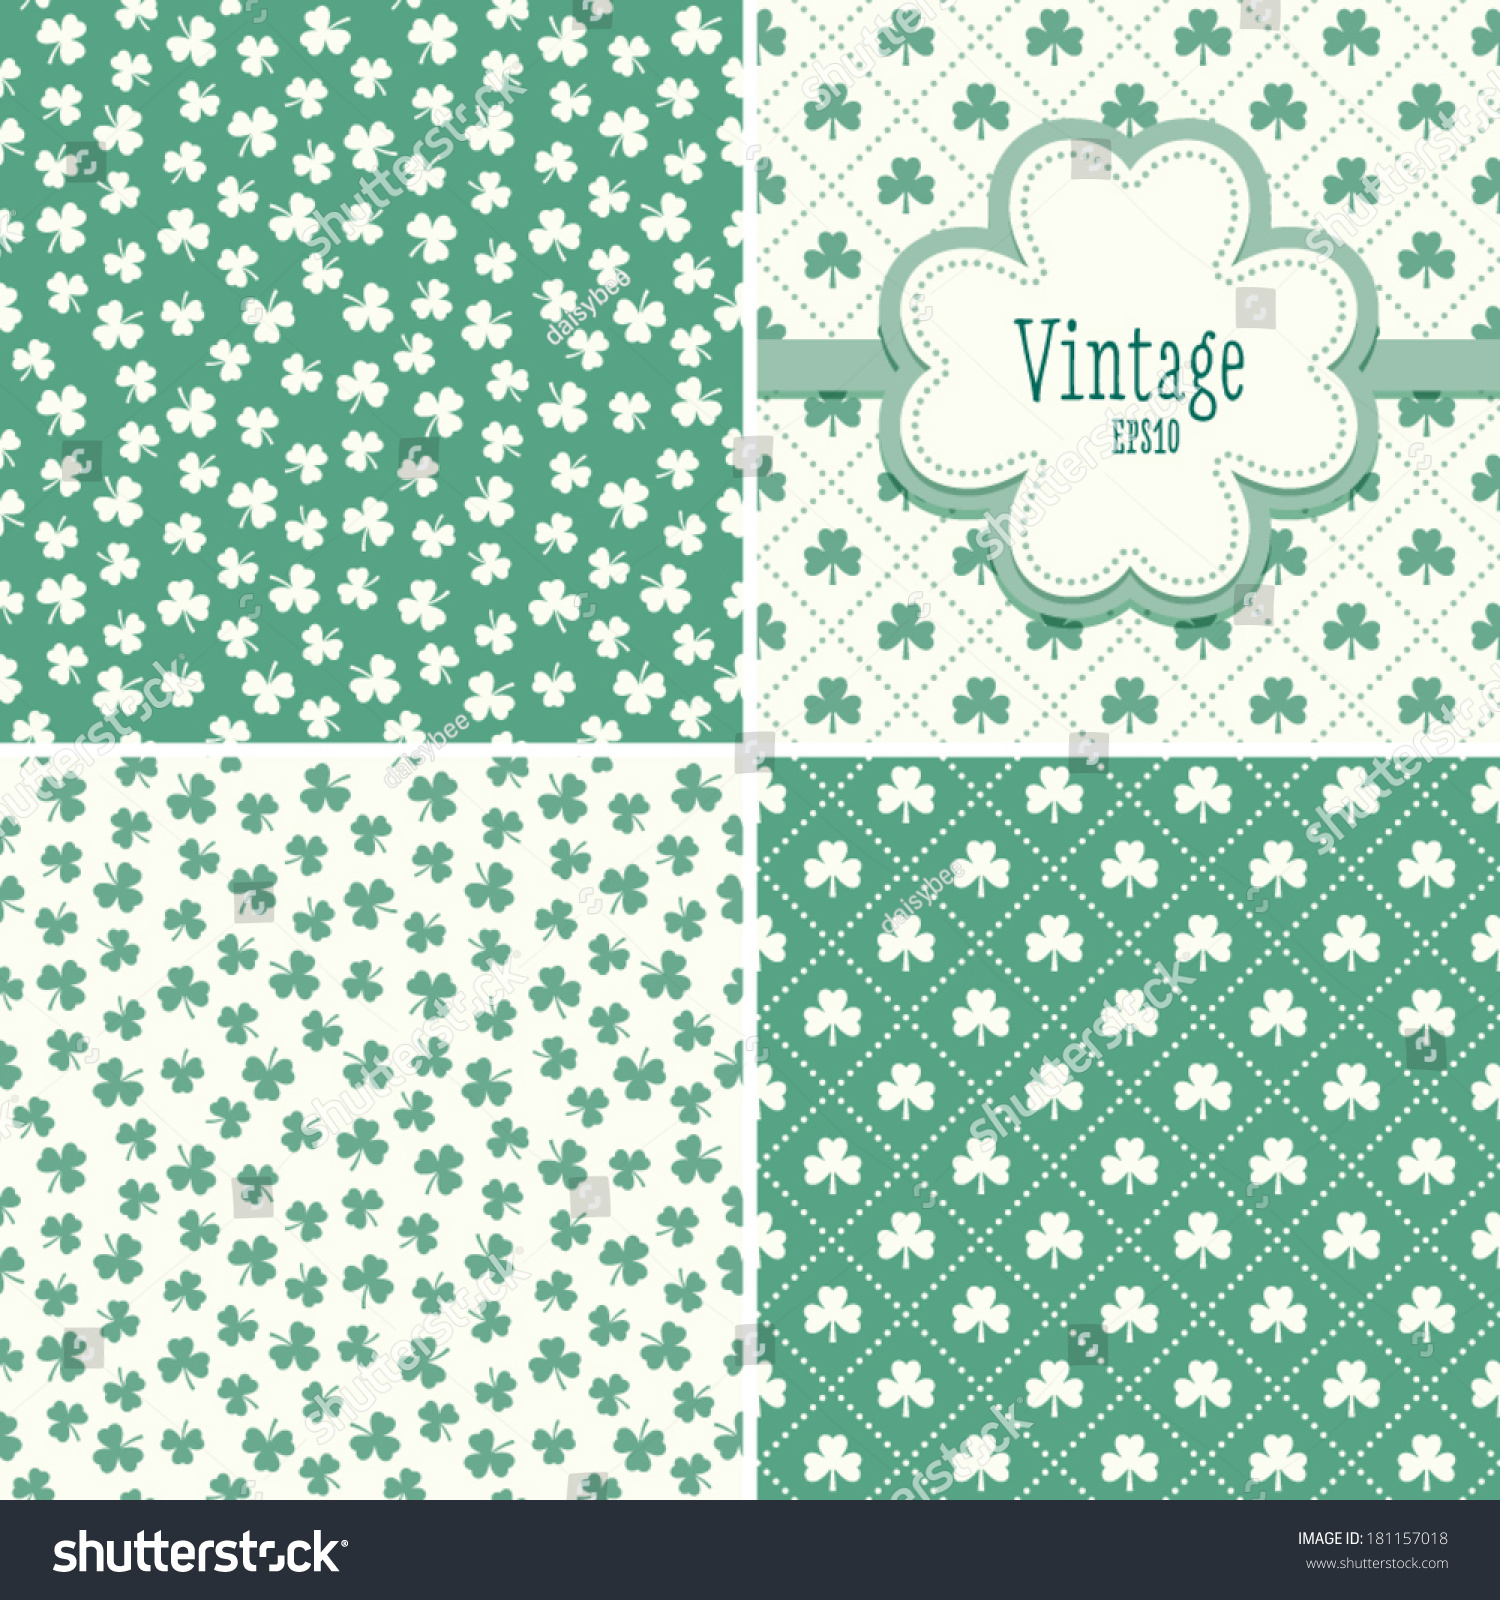 Excellent 1 Inch Circle Template Tiny 1 Round Label Template Square 1.5 Inch Hexagon Template 10 Off Coupon Template Old 12 Team Schedule Template Fresh15 Year Old Resume Template Set Mint Green Backgrounds Shamrock Clover Stock Vector 181157018 ..